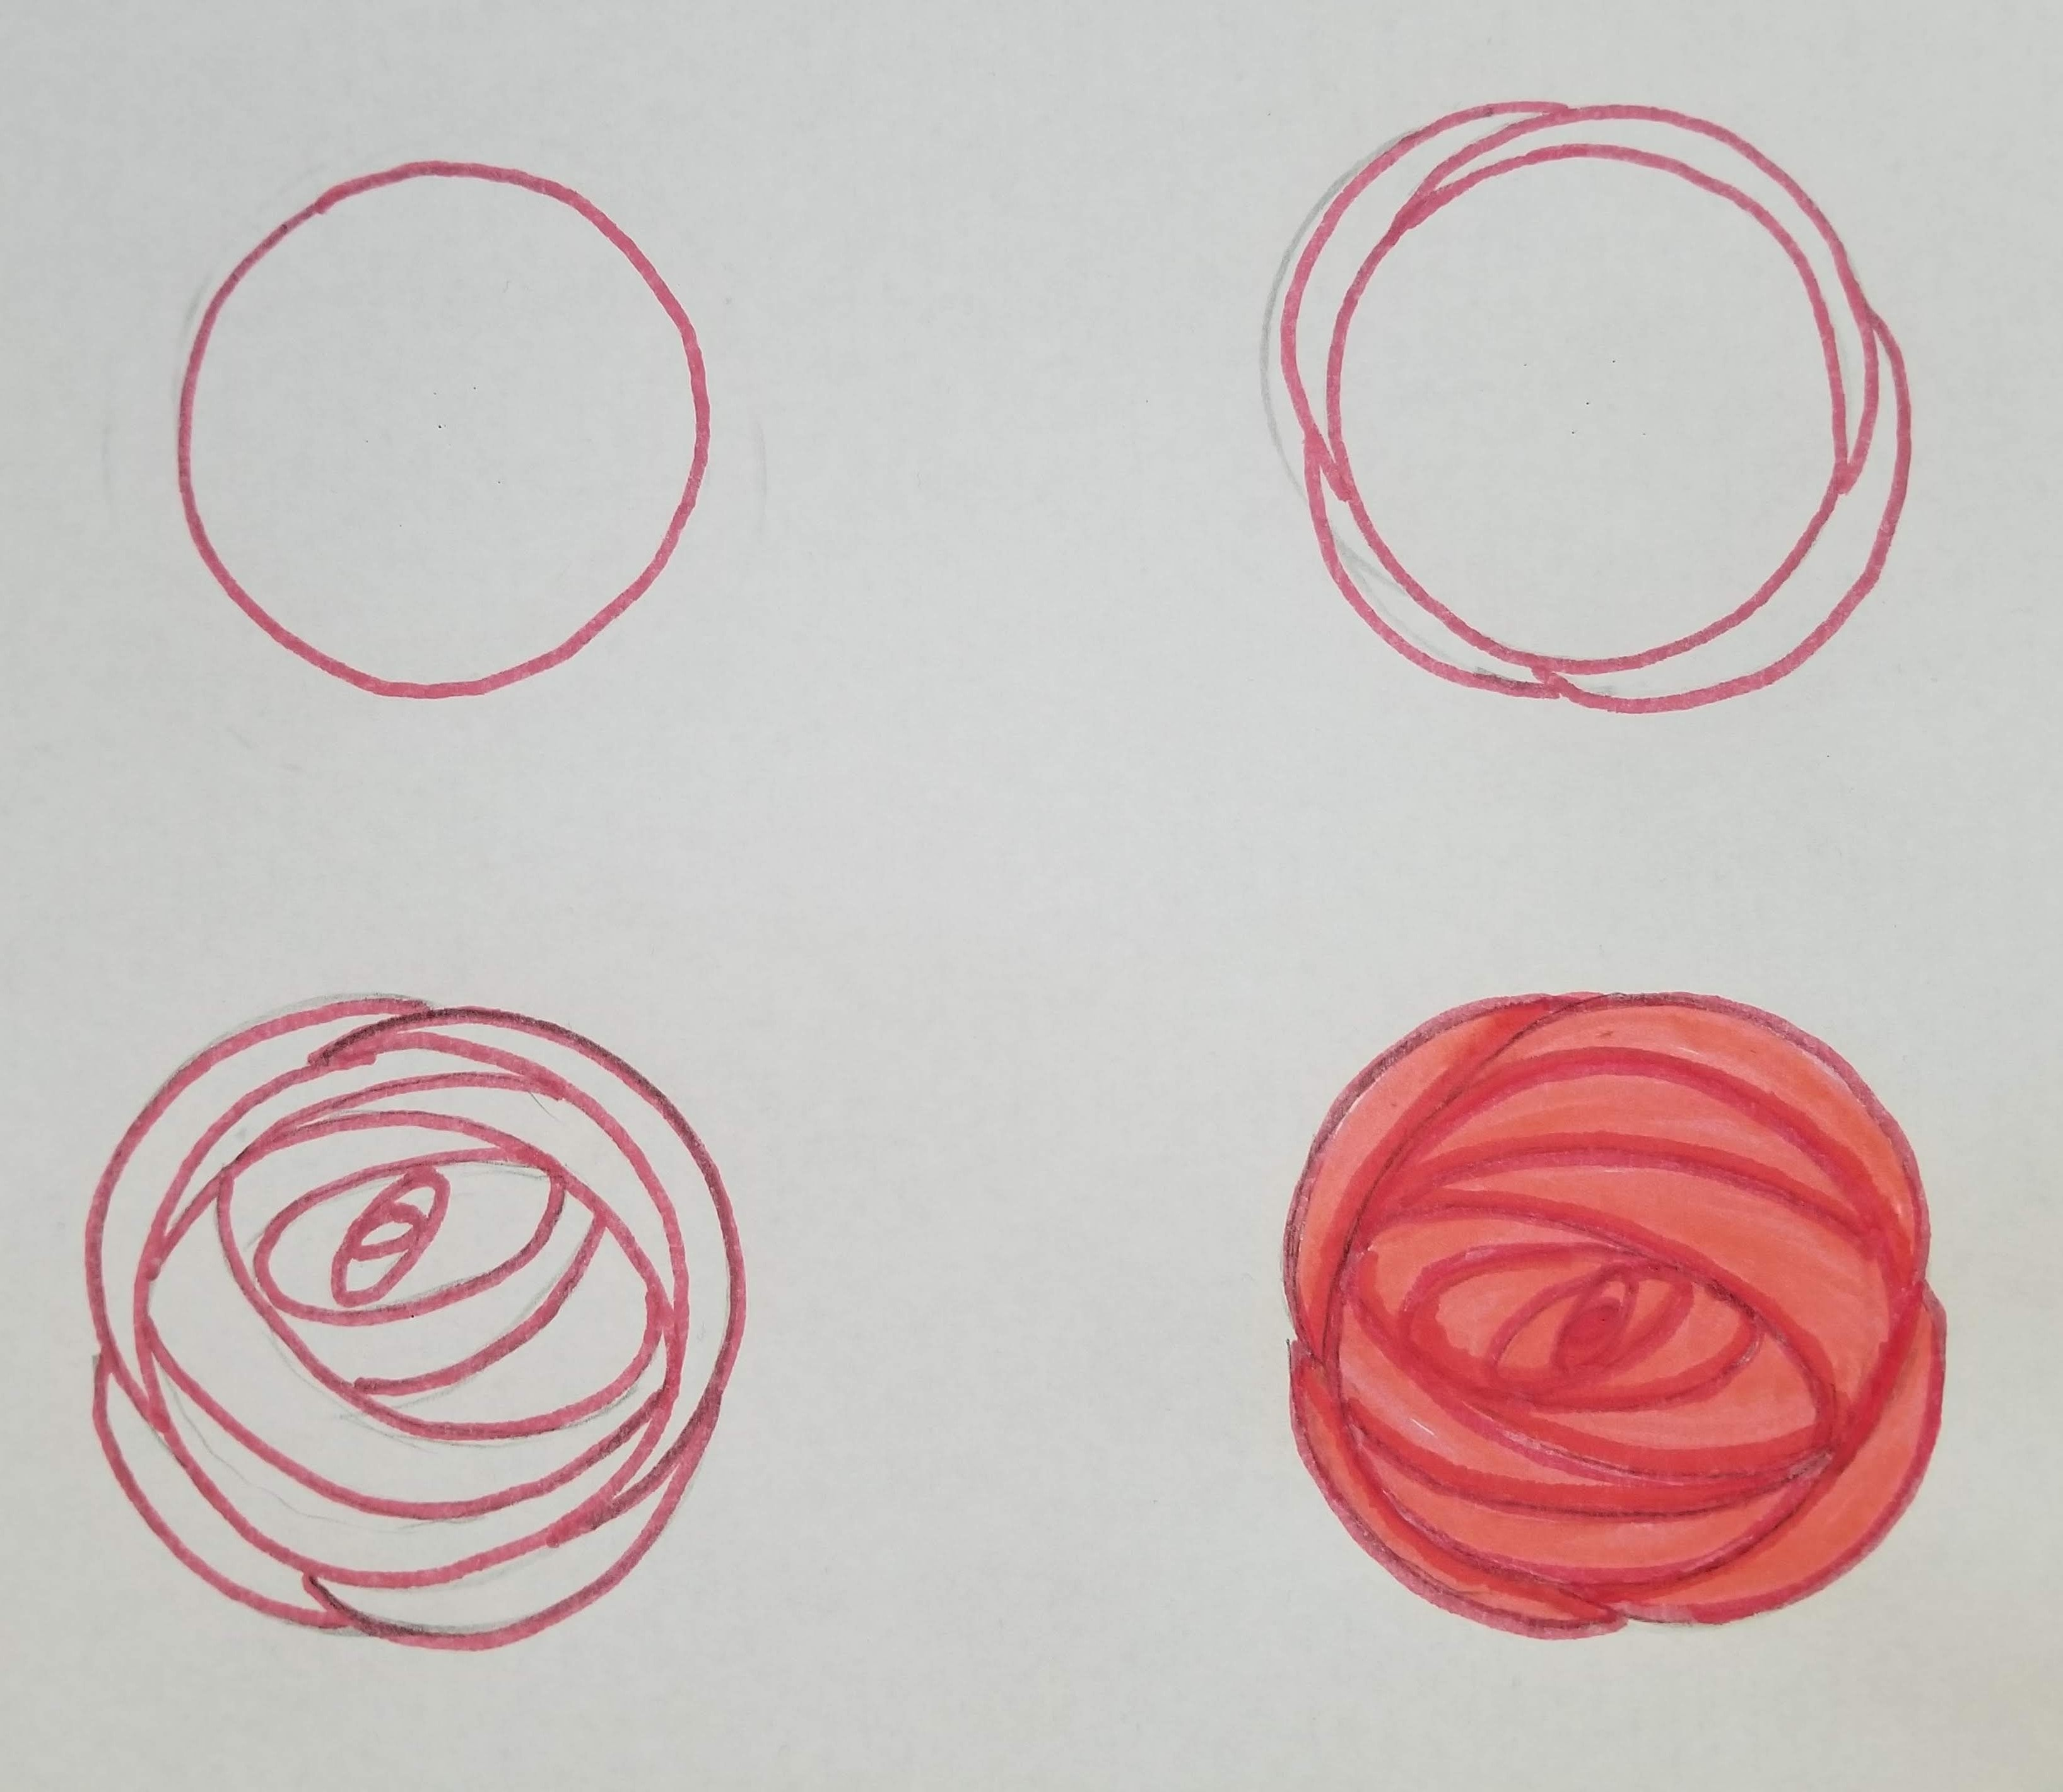 How To Draw Roses - Oval Shapes